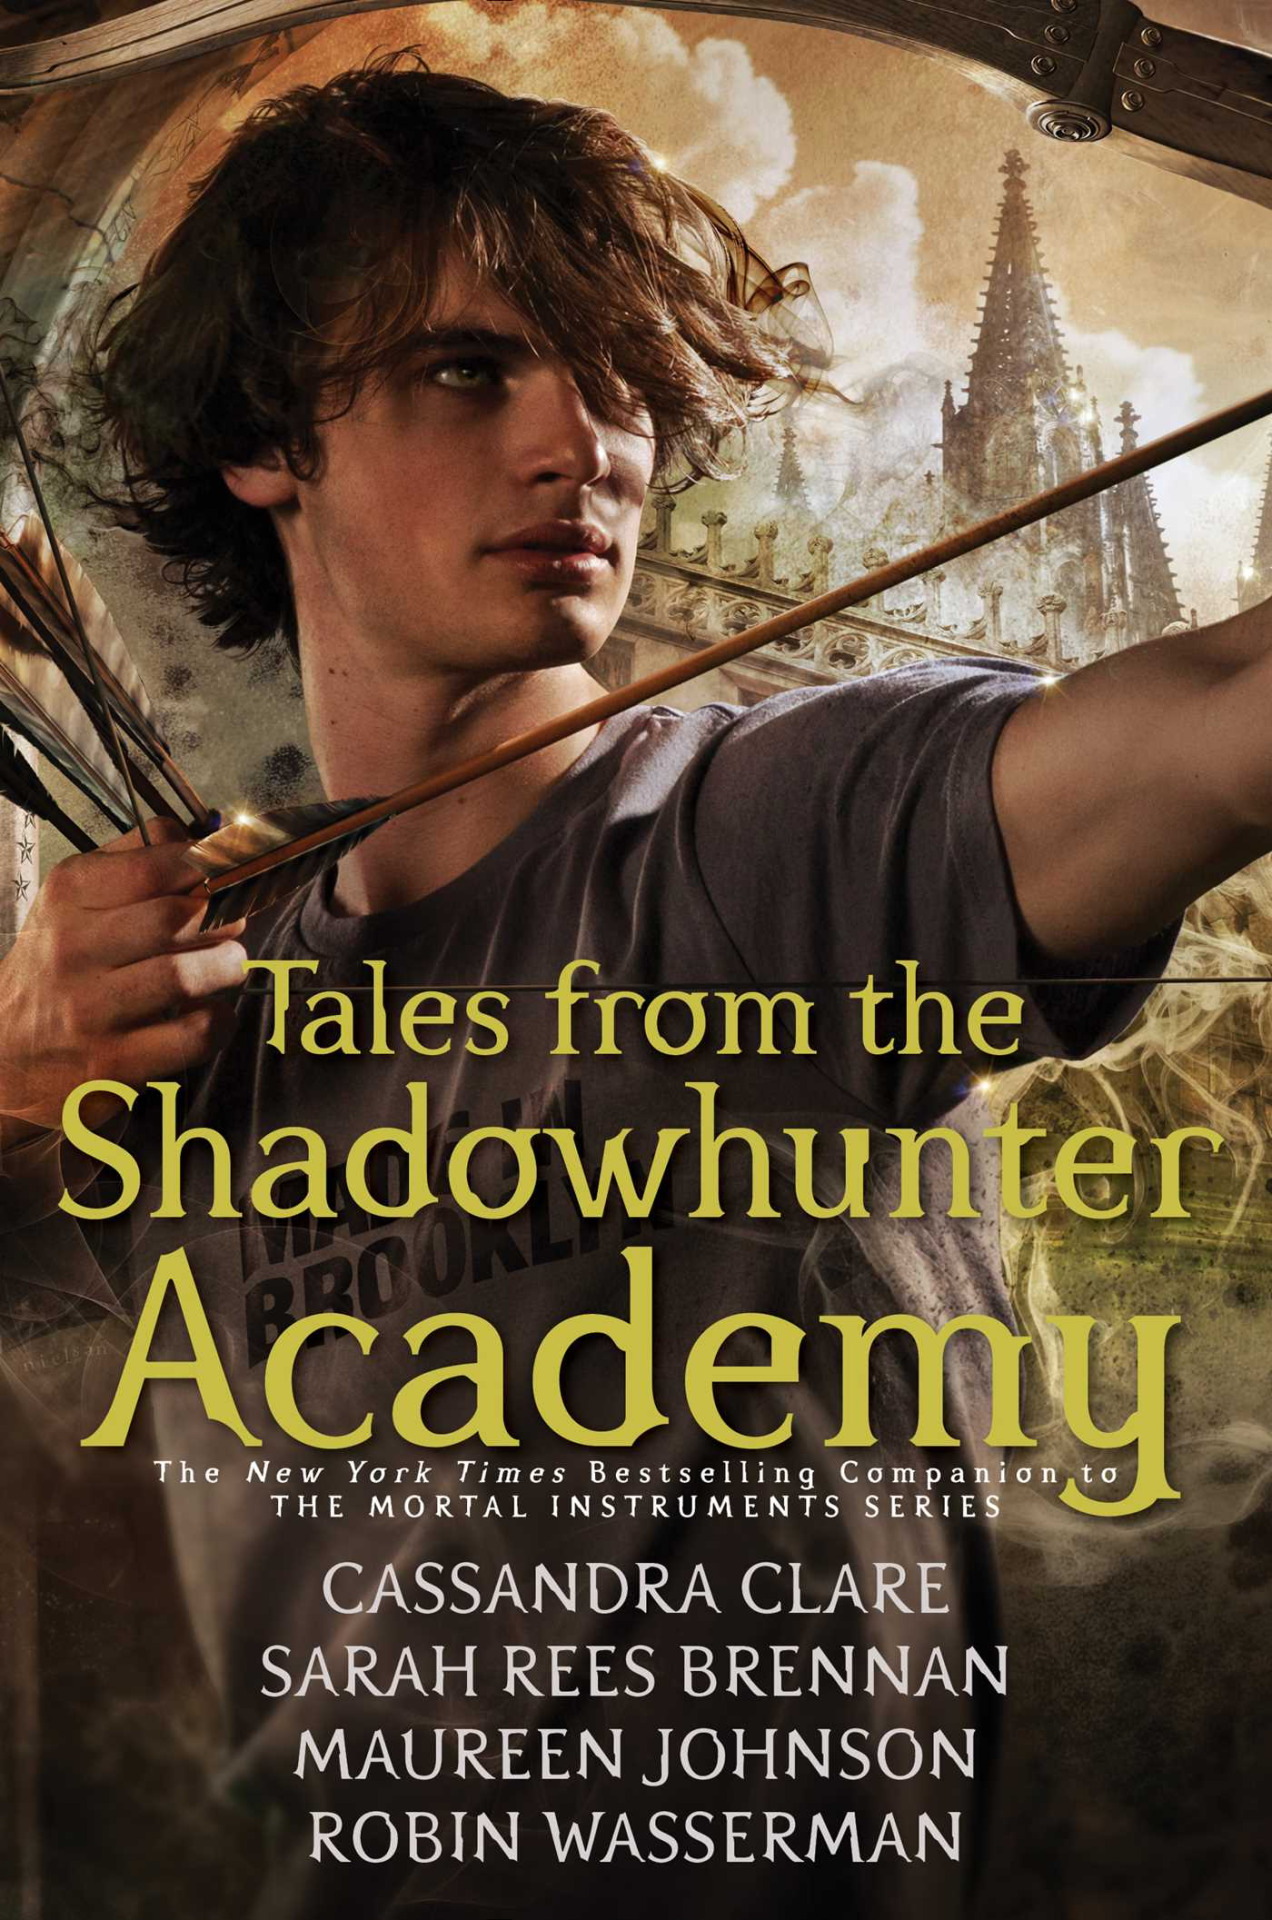 Image result for tales from shadowhunter academy